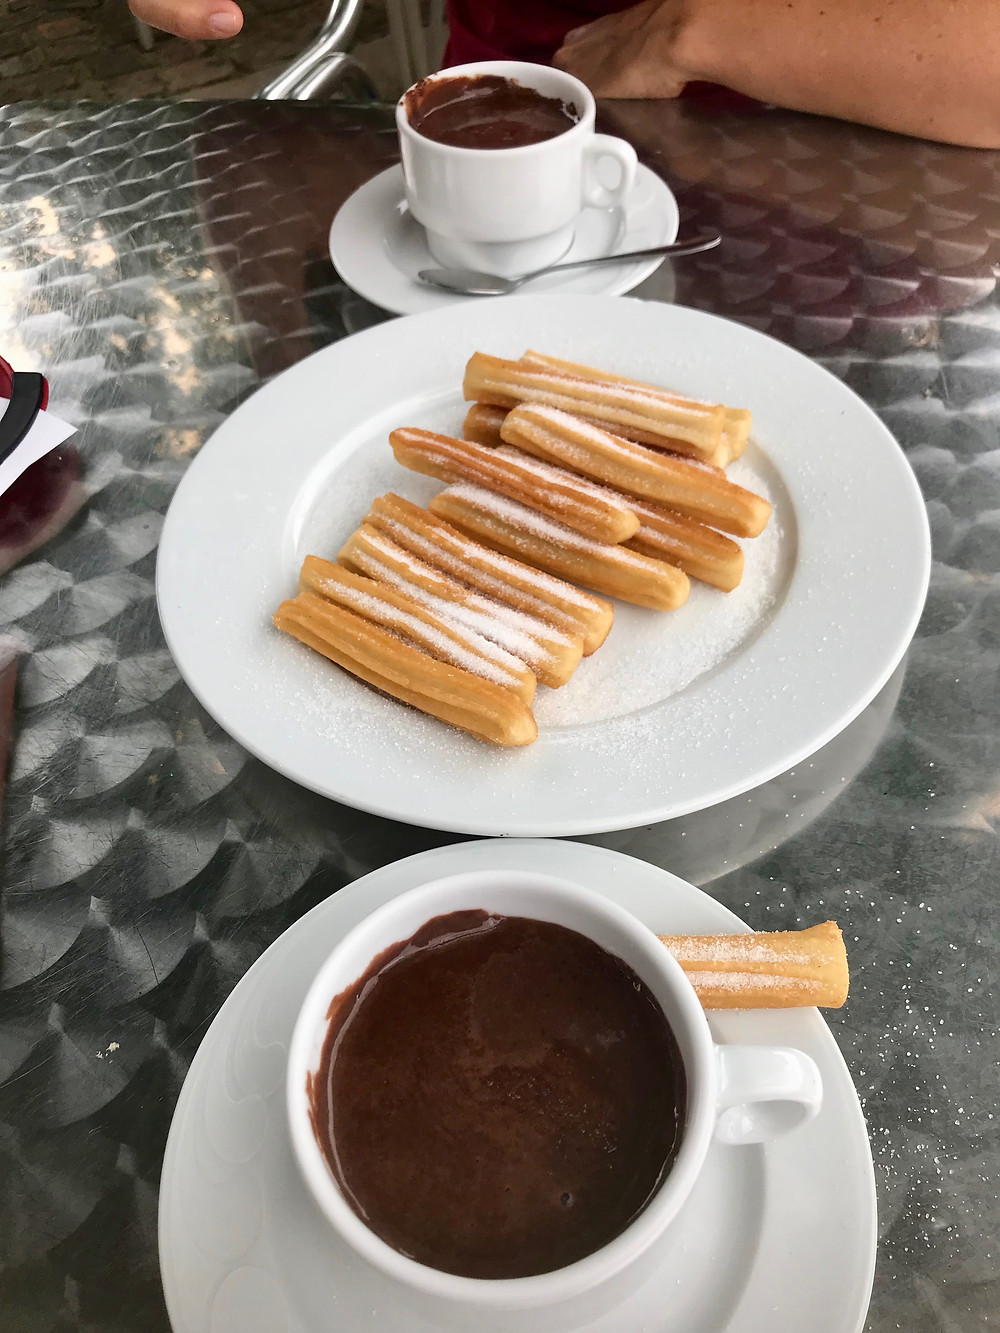 hot chocolate and churros at a cafe in Santillana del Mar